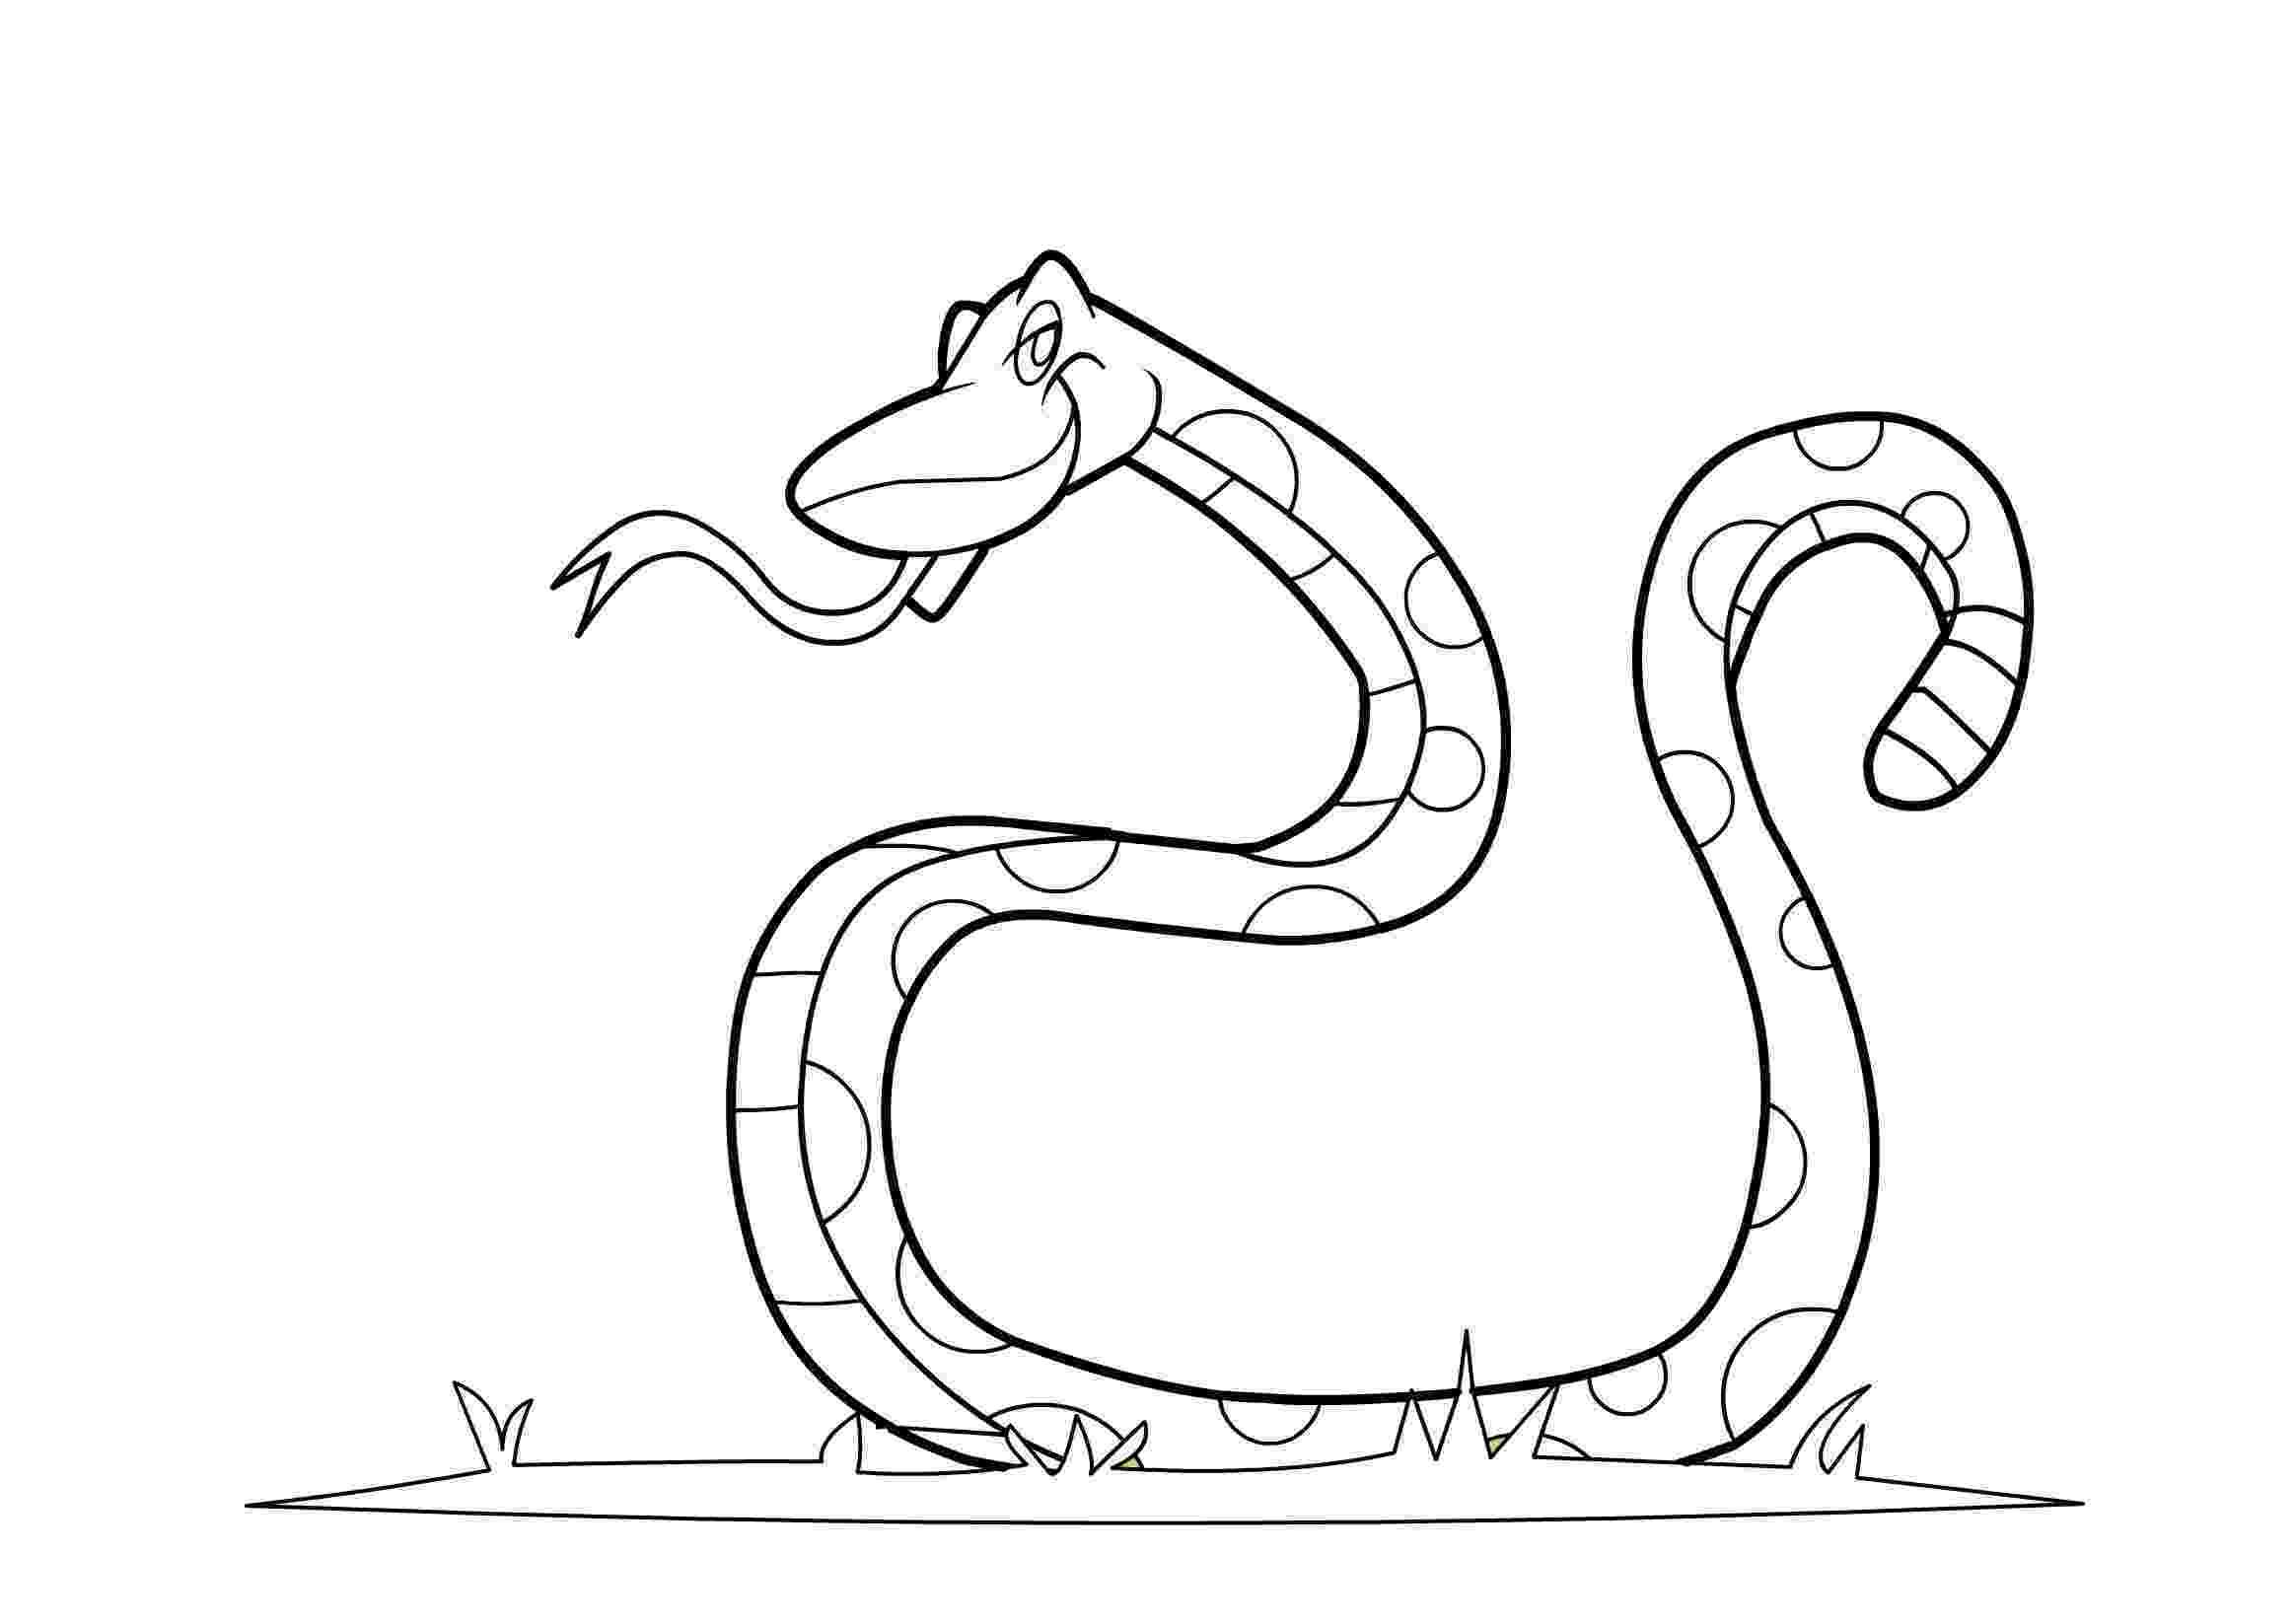 snake colouring picture free printable snake coloring pages for kids picture colouring snake 1 1